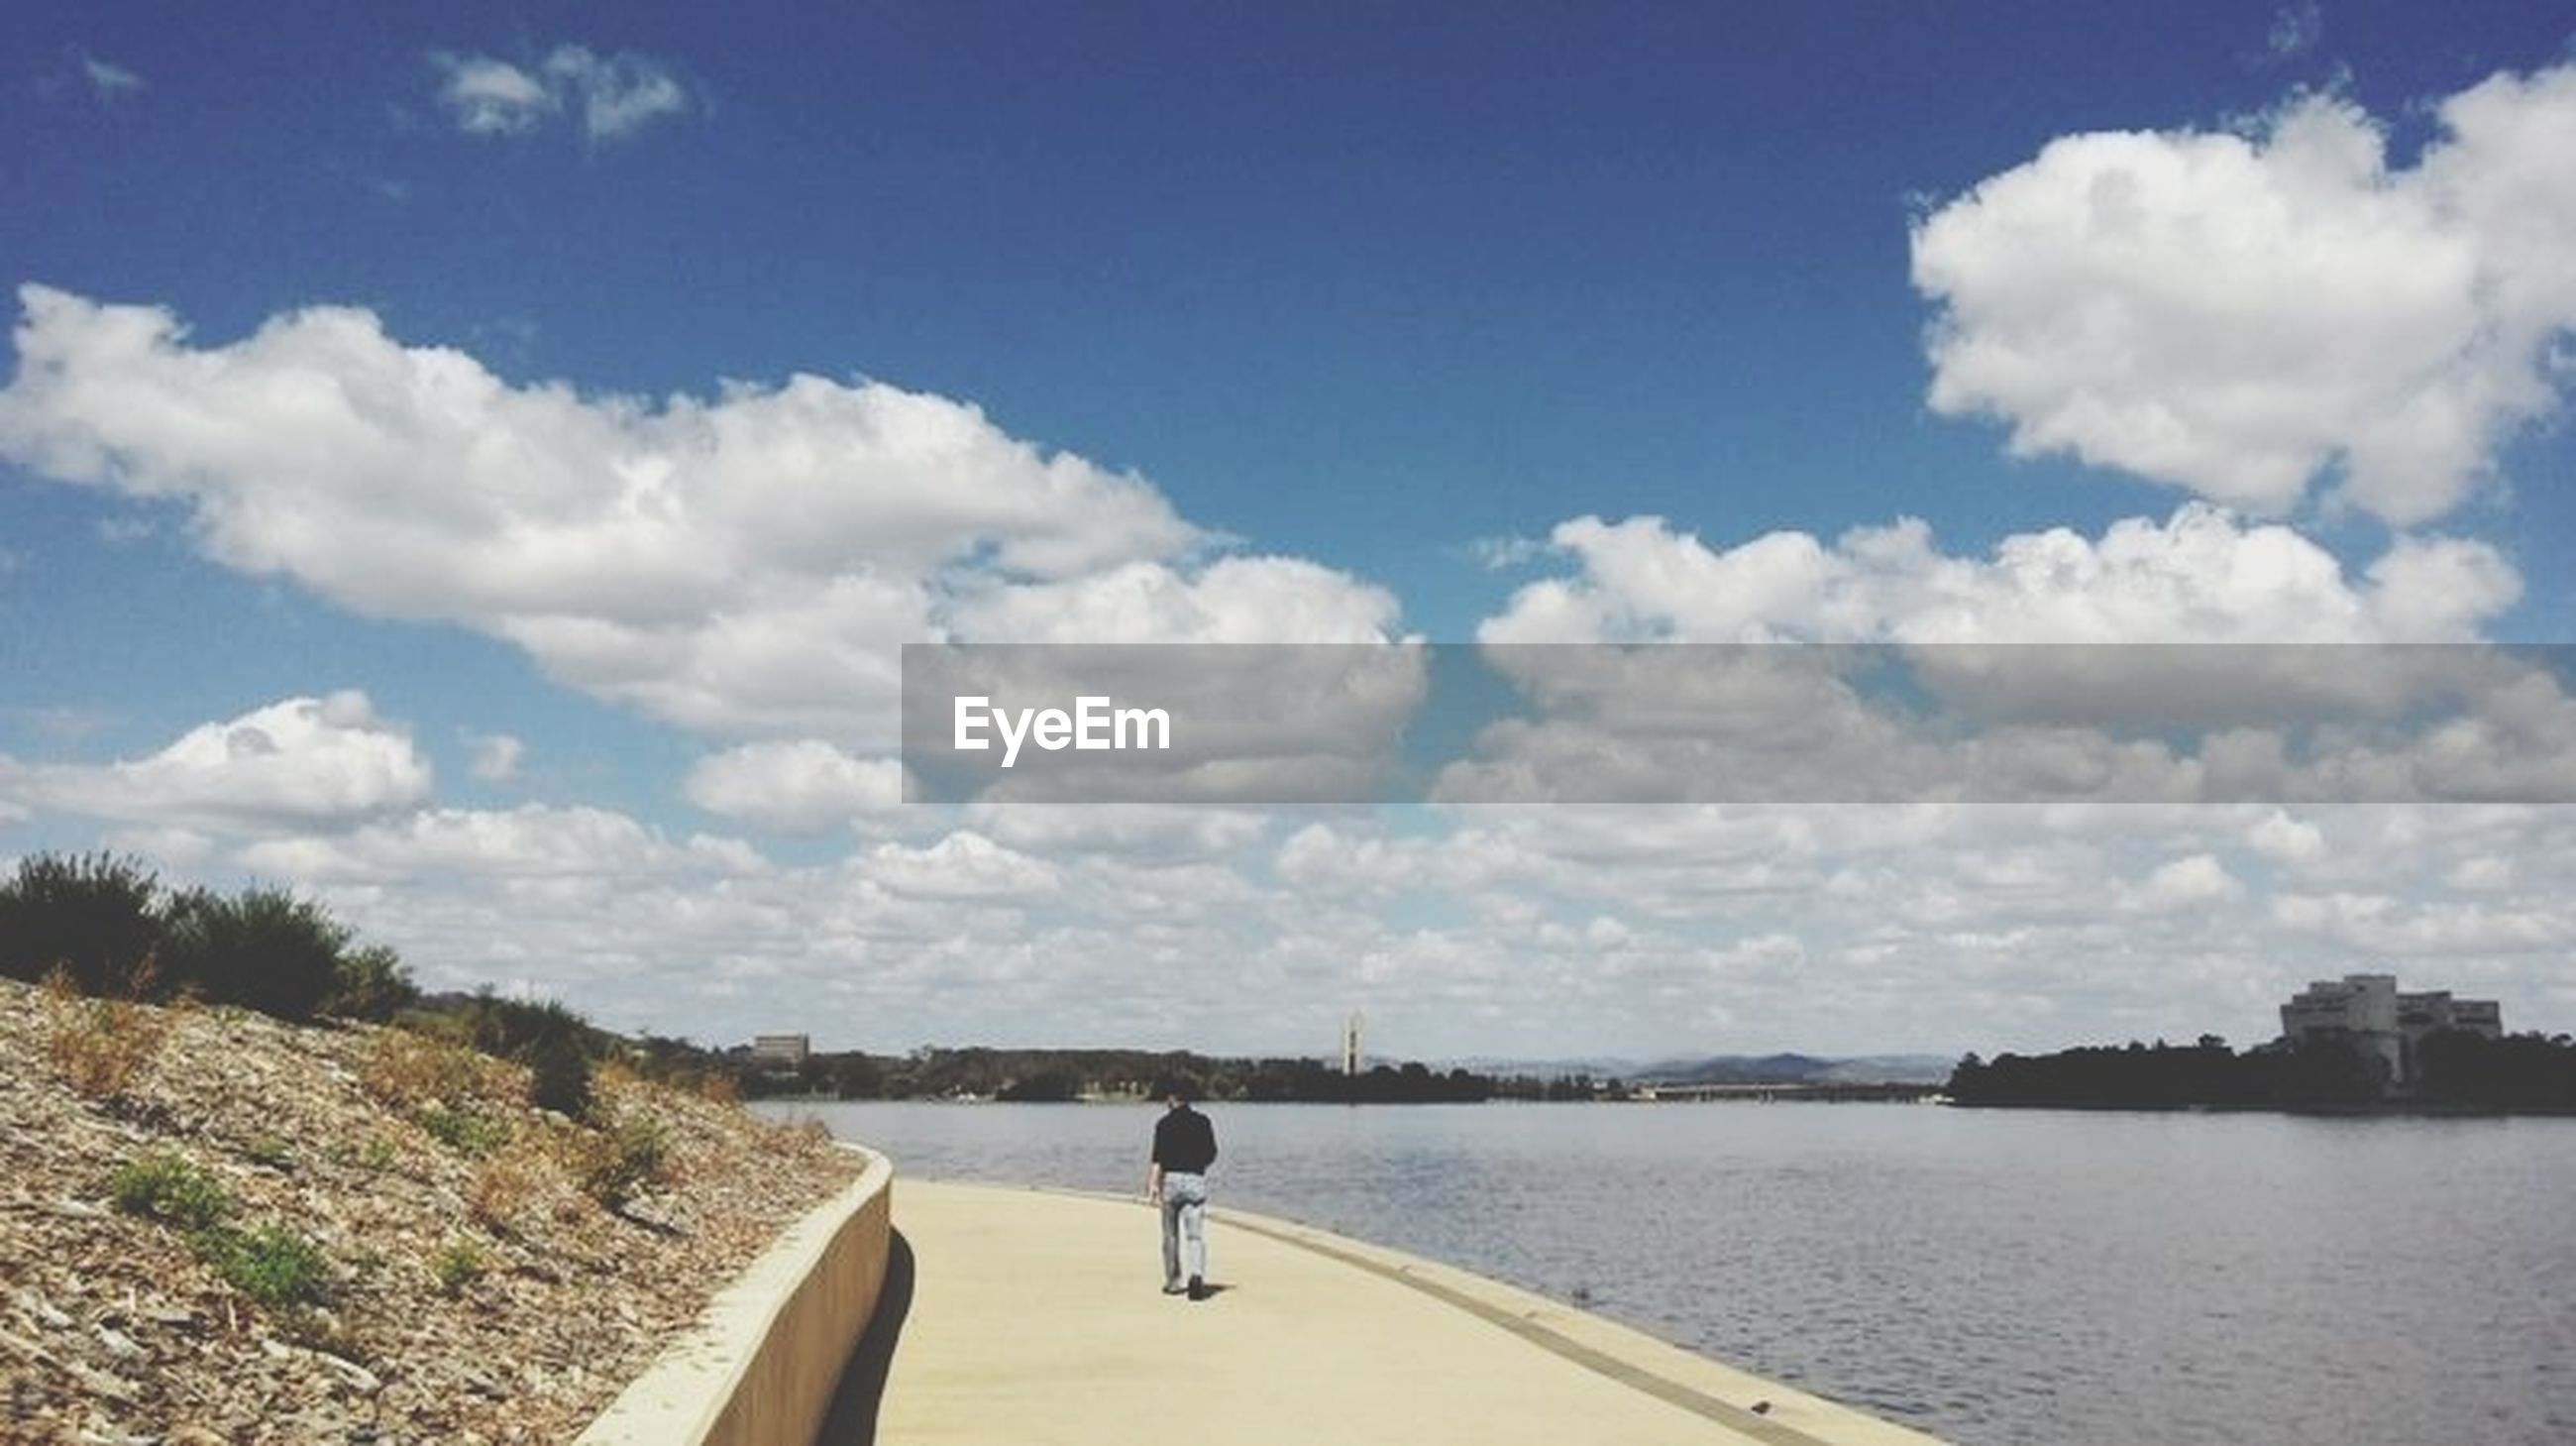 sky, water, cloud - sky, cloud, transportation, rear view, nature, river, sea, tranquility, tranquil scene, cloudy, day, the way forward, scenics, lifestyles, lake, beauty in nature